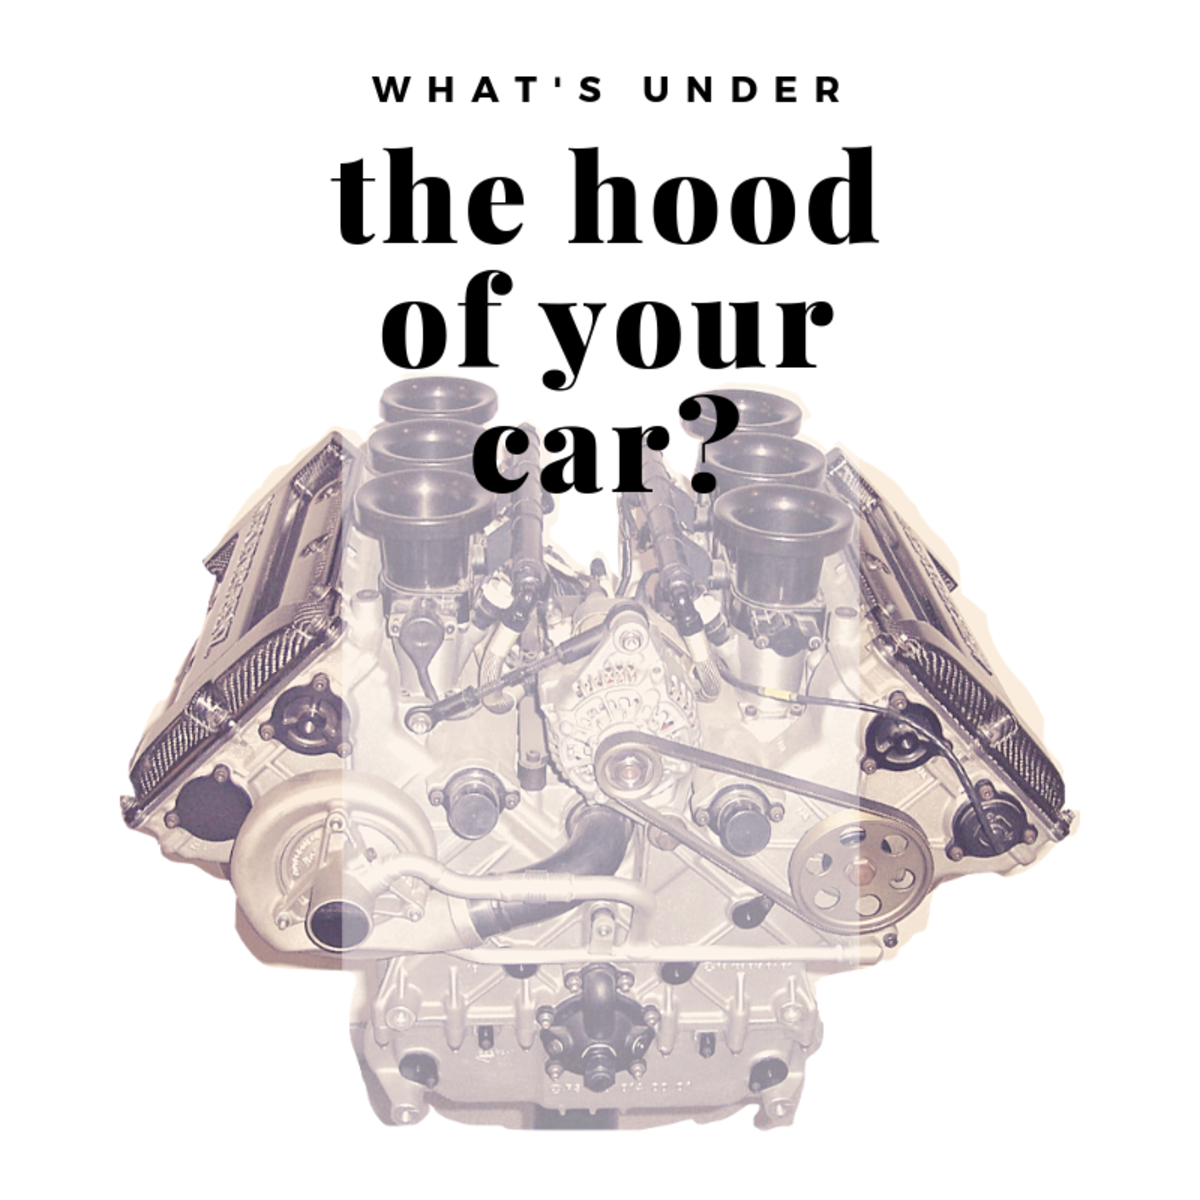 What's Under the Hood of Your Car?